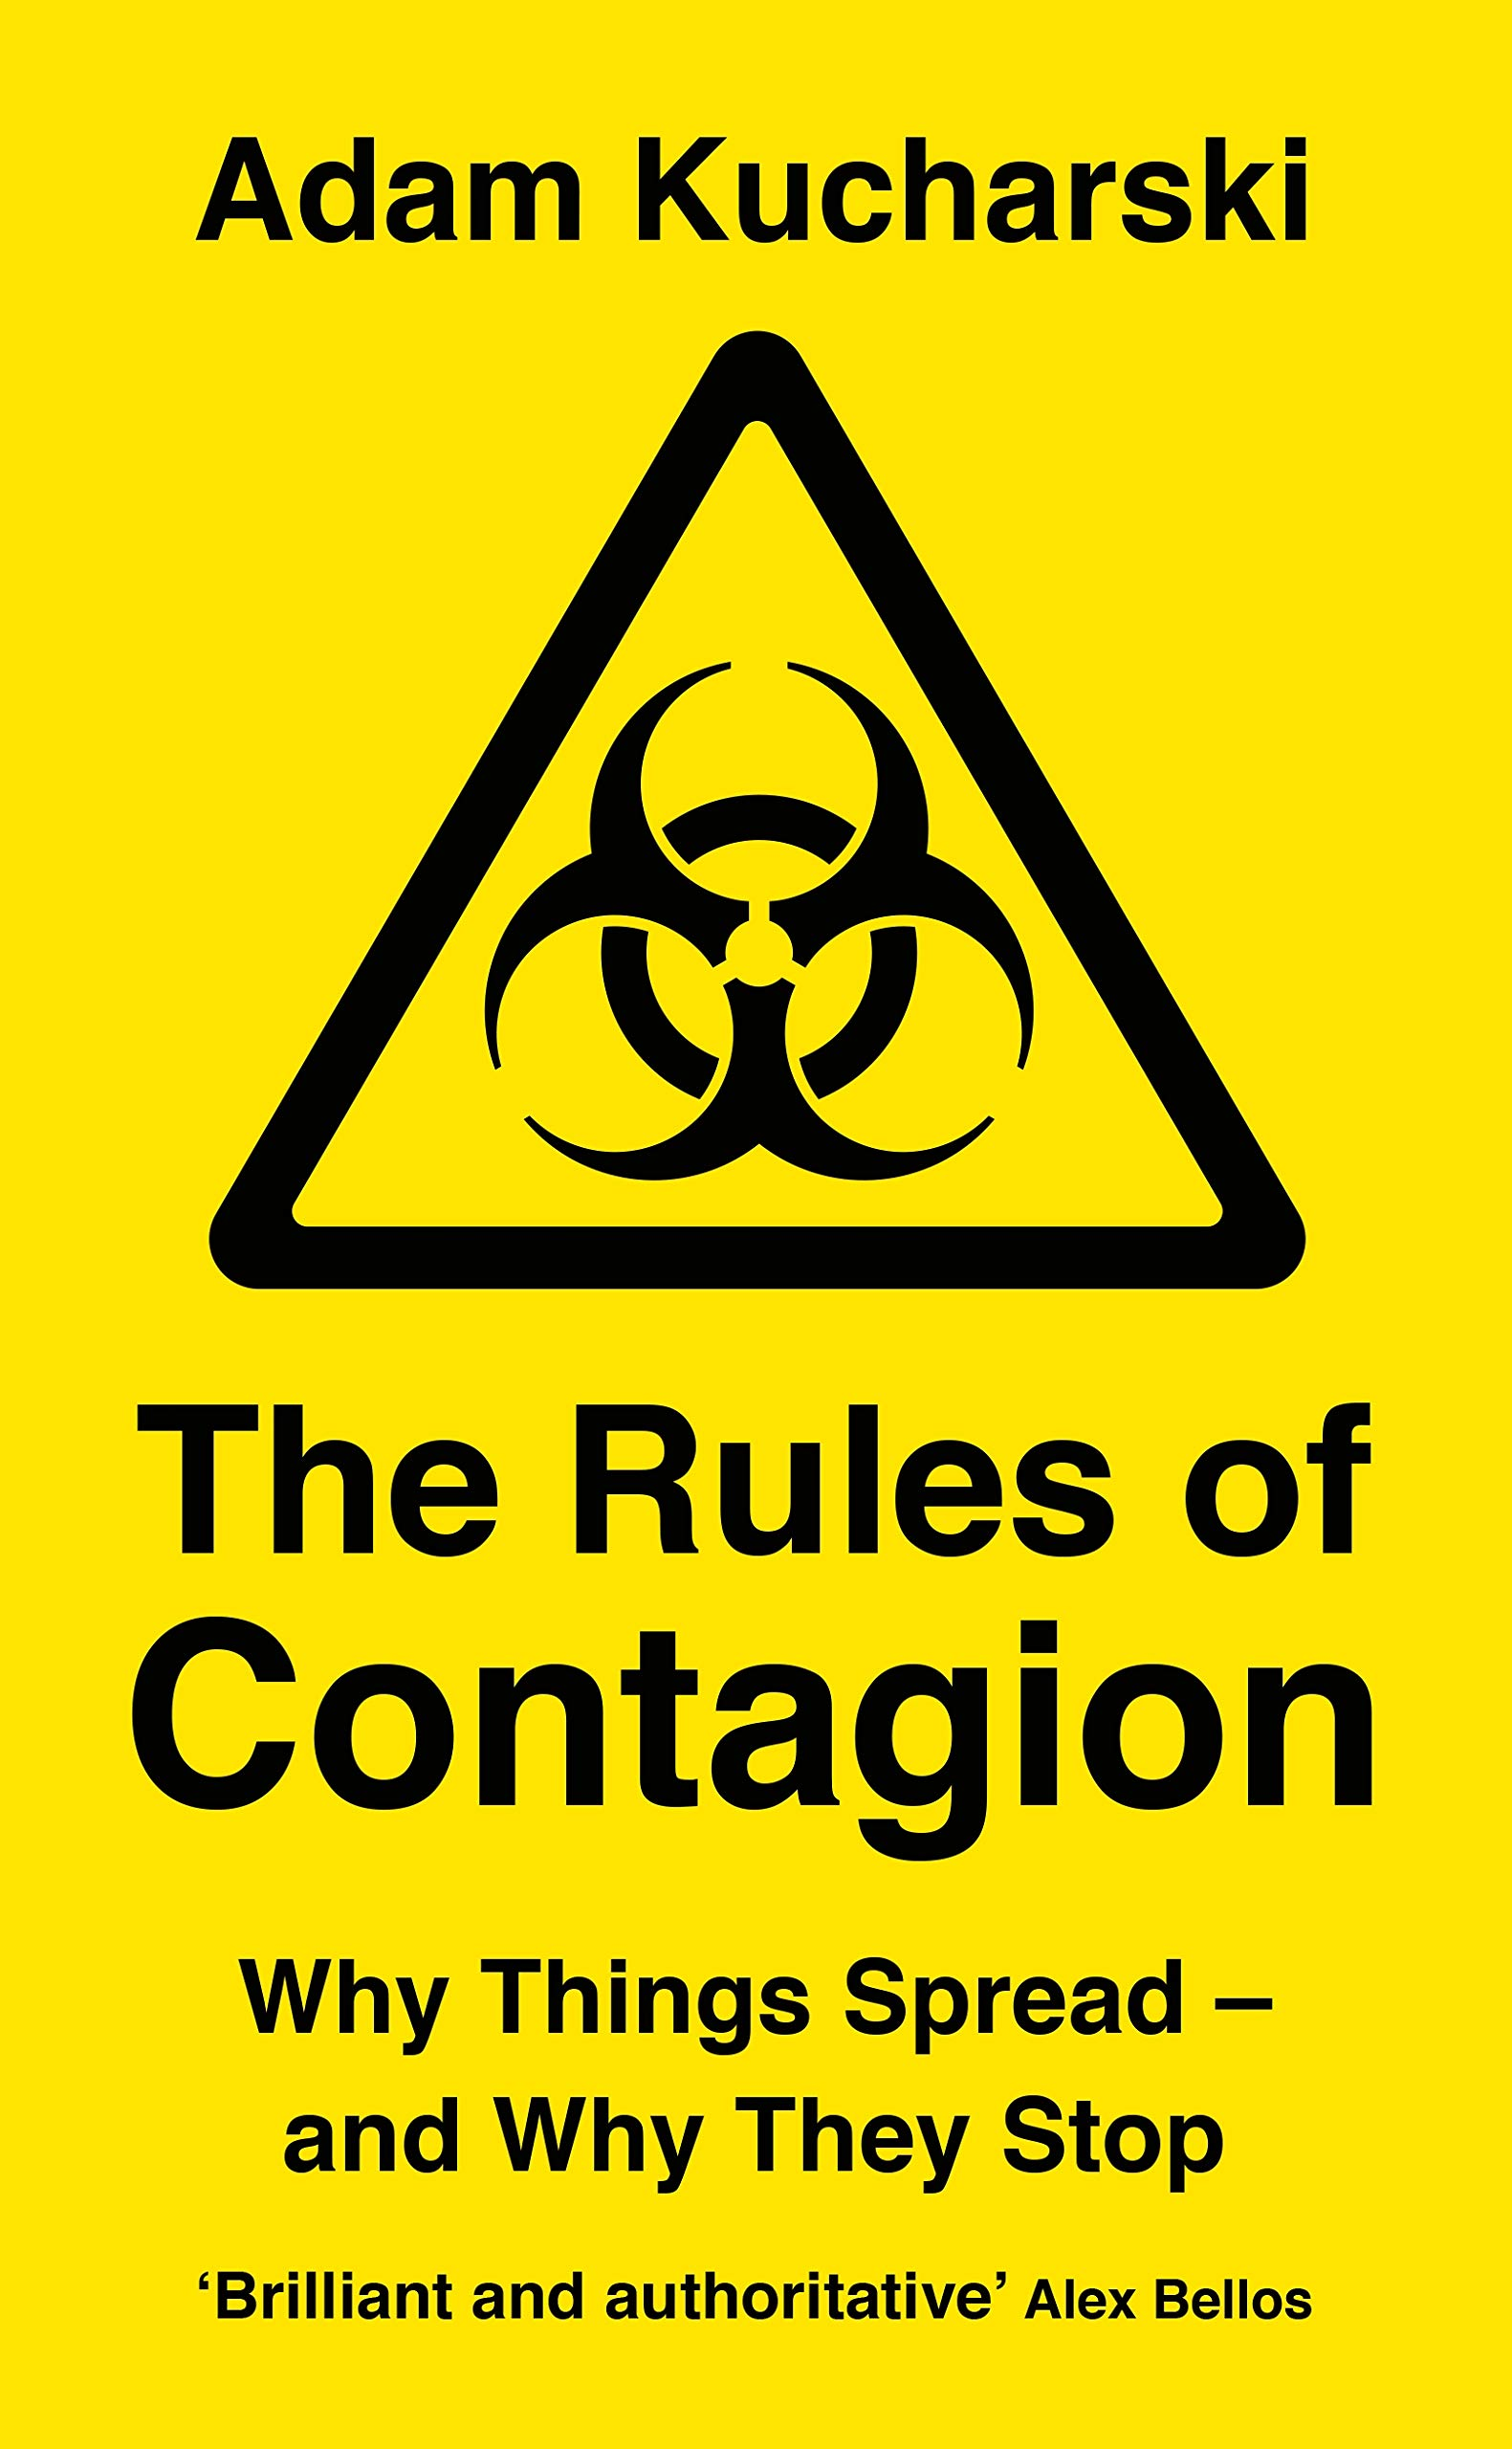 The Rules of Contagion: Why Things Spread - and Why They Stop, by Adam Kucharski - Survival (and Other) Books About the COVID-19 Coronavirus - Survival Books - Survival, Sustainable Living